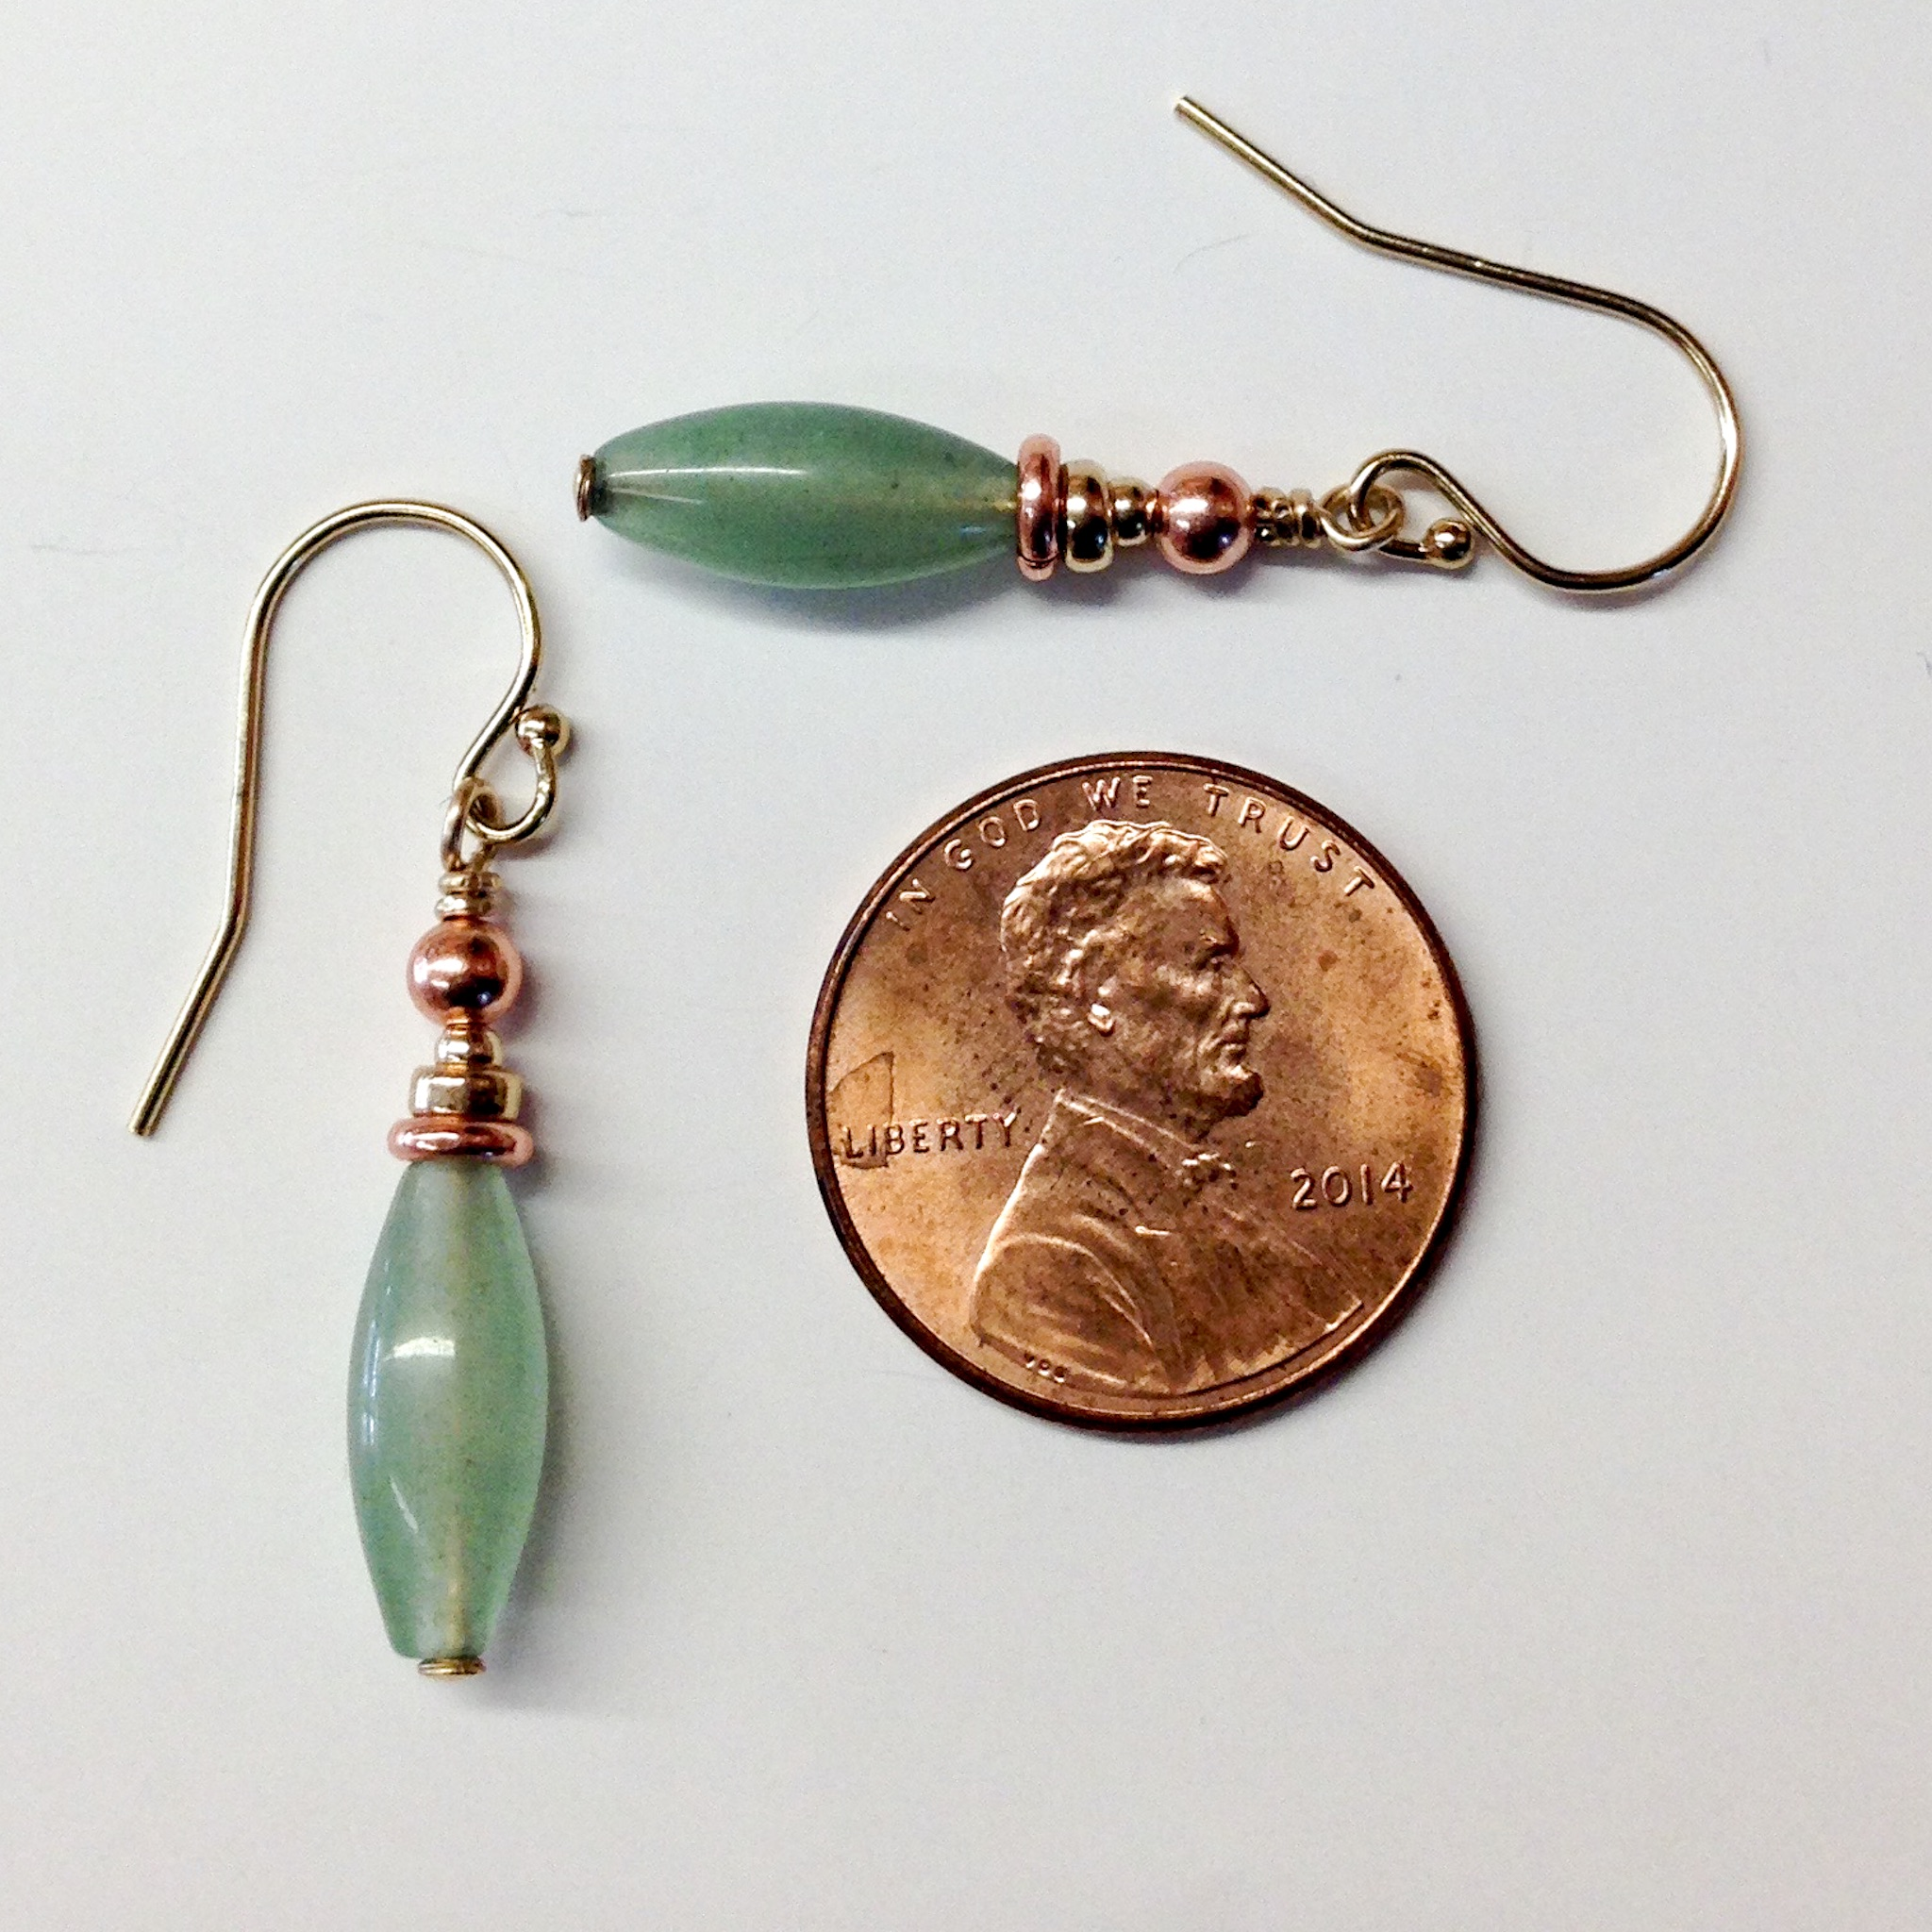 7th Anniversary Gifts For Women Copper Earrings Aventurine